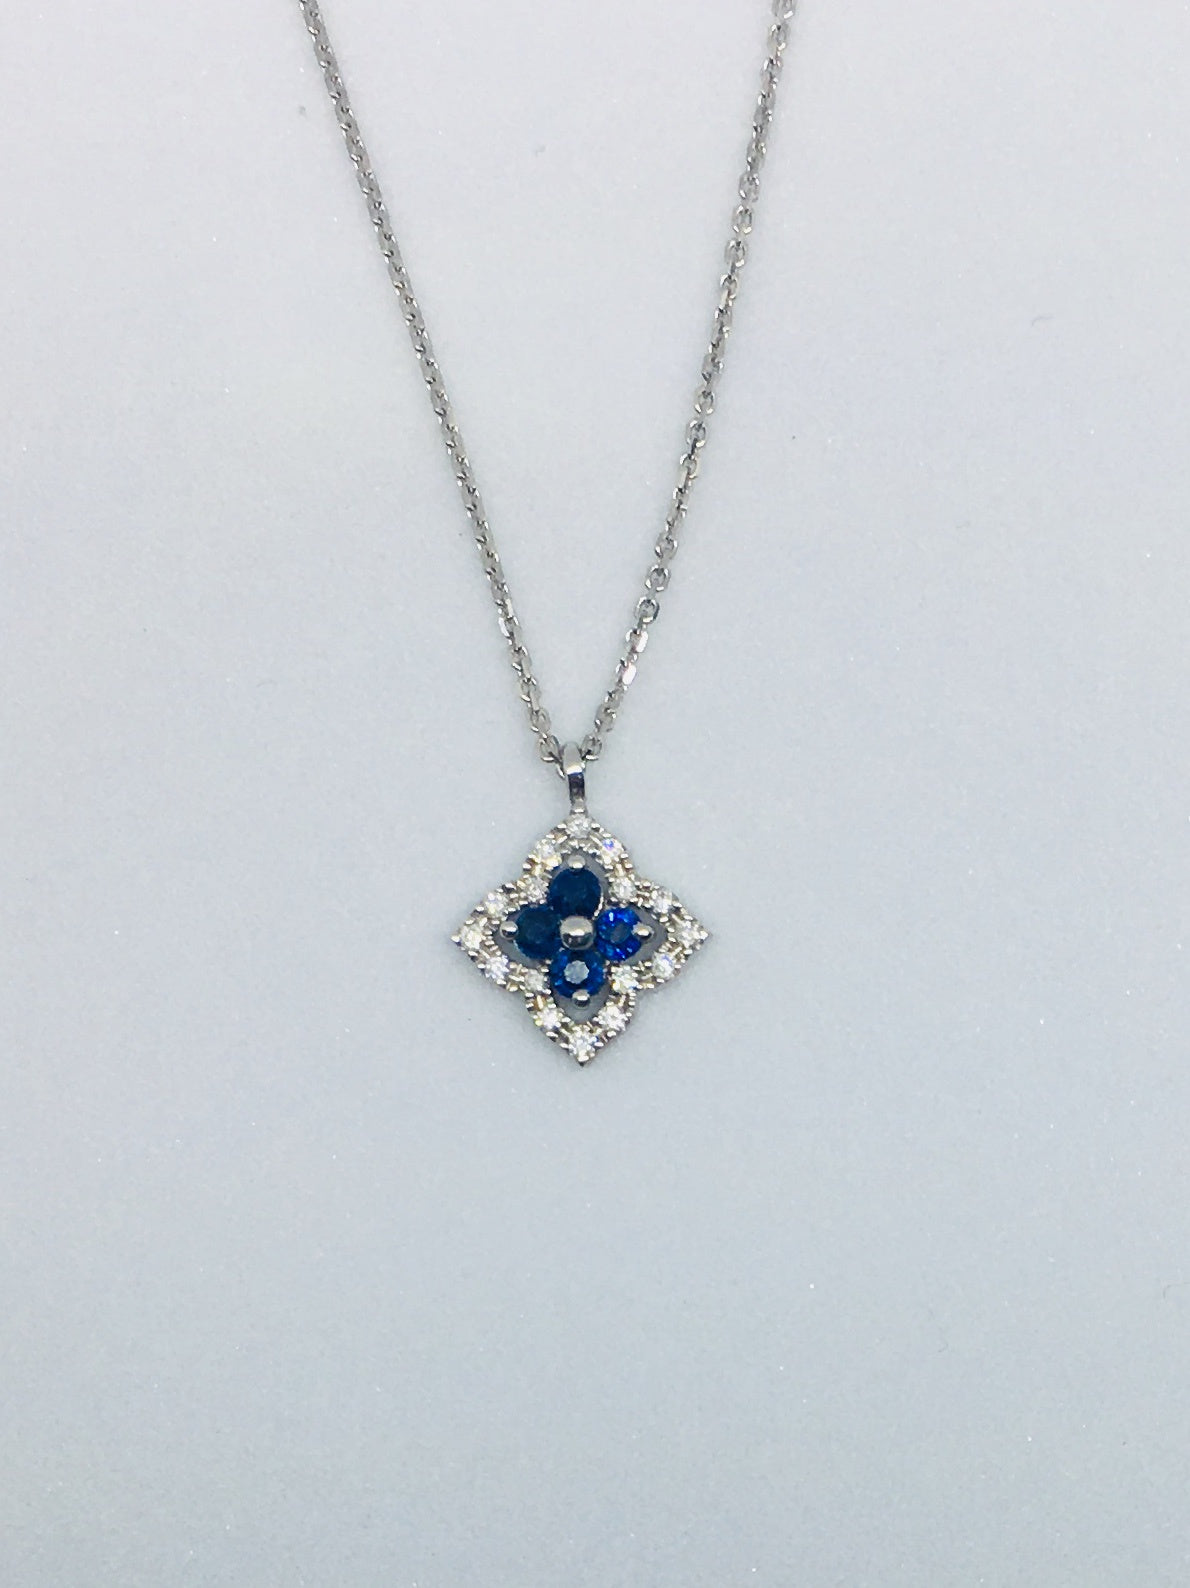 9ct White Gold 0.06ct Diamond & Sapphire Necklace 2-30147S